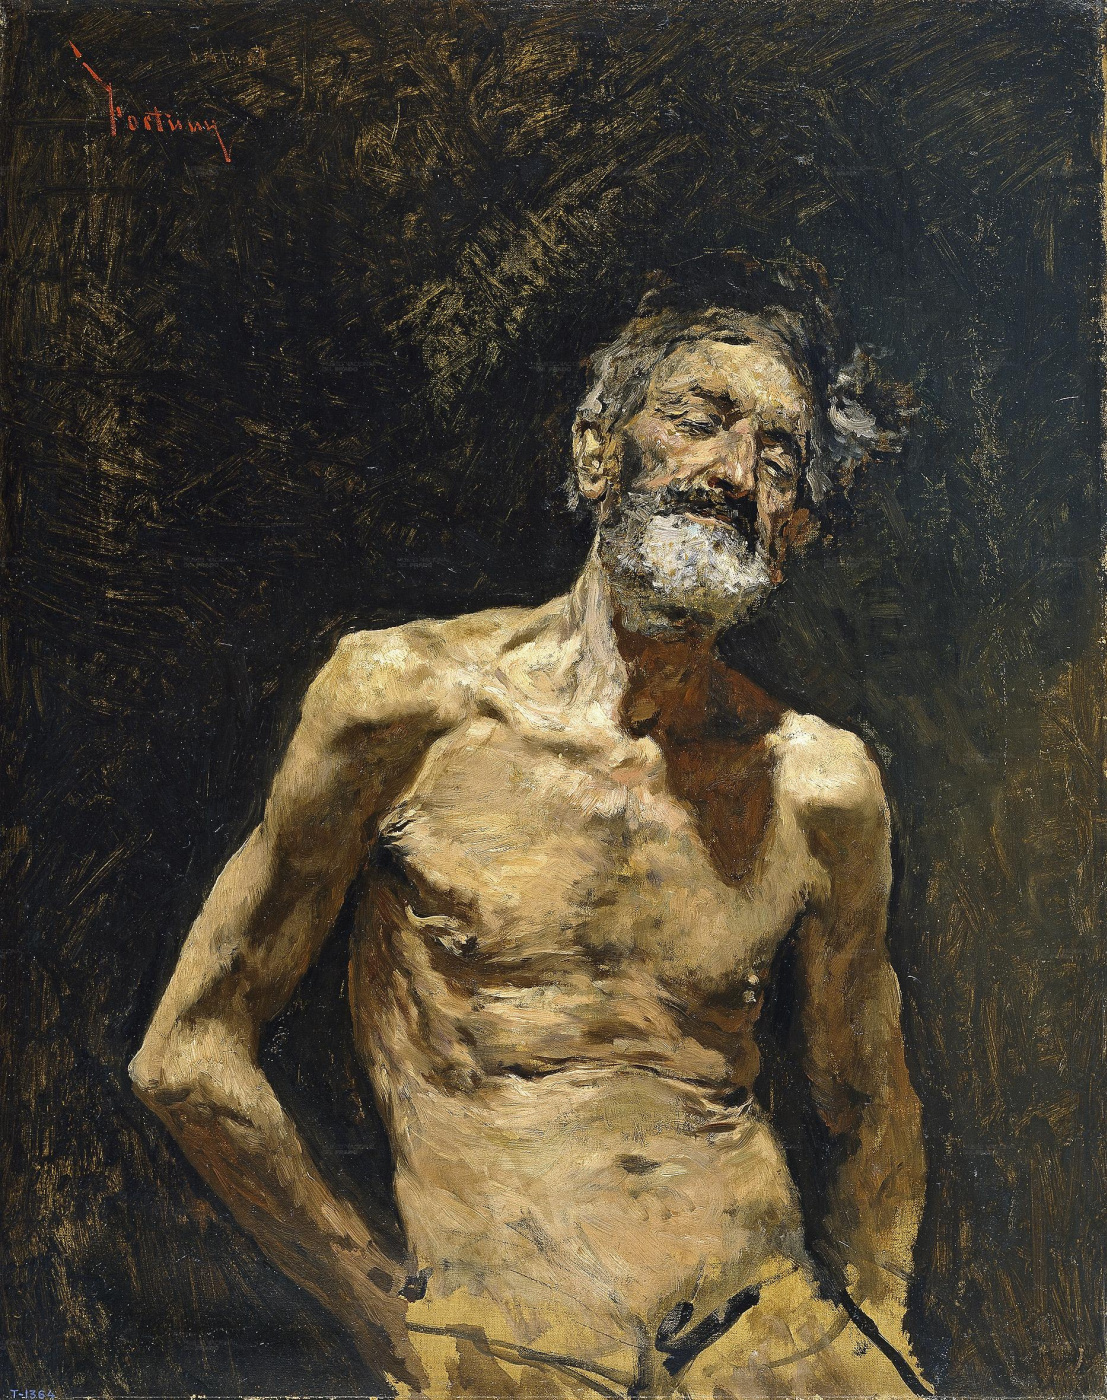 Mariano Fortuny y Marsal. Naked man basking in the sun